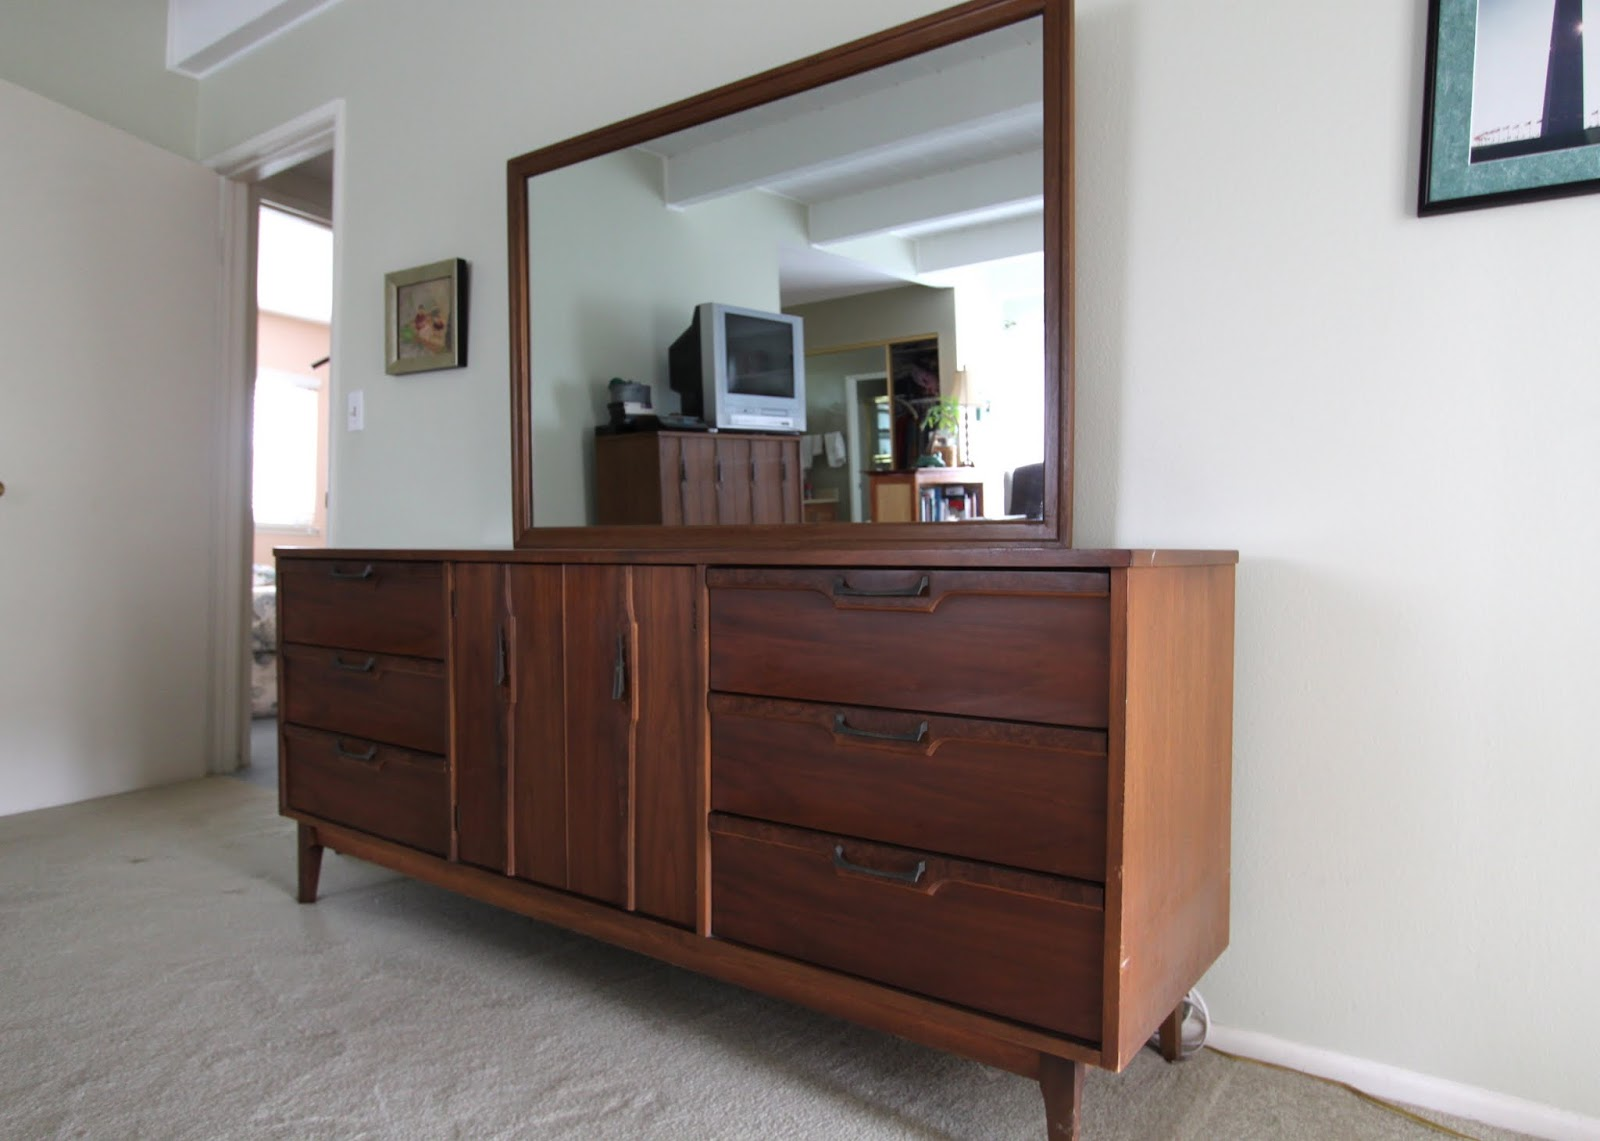 mom 39 s dresser and mirror very similar to the look feel of brasili